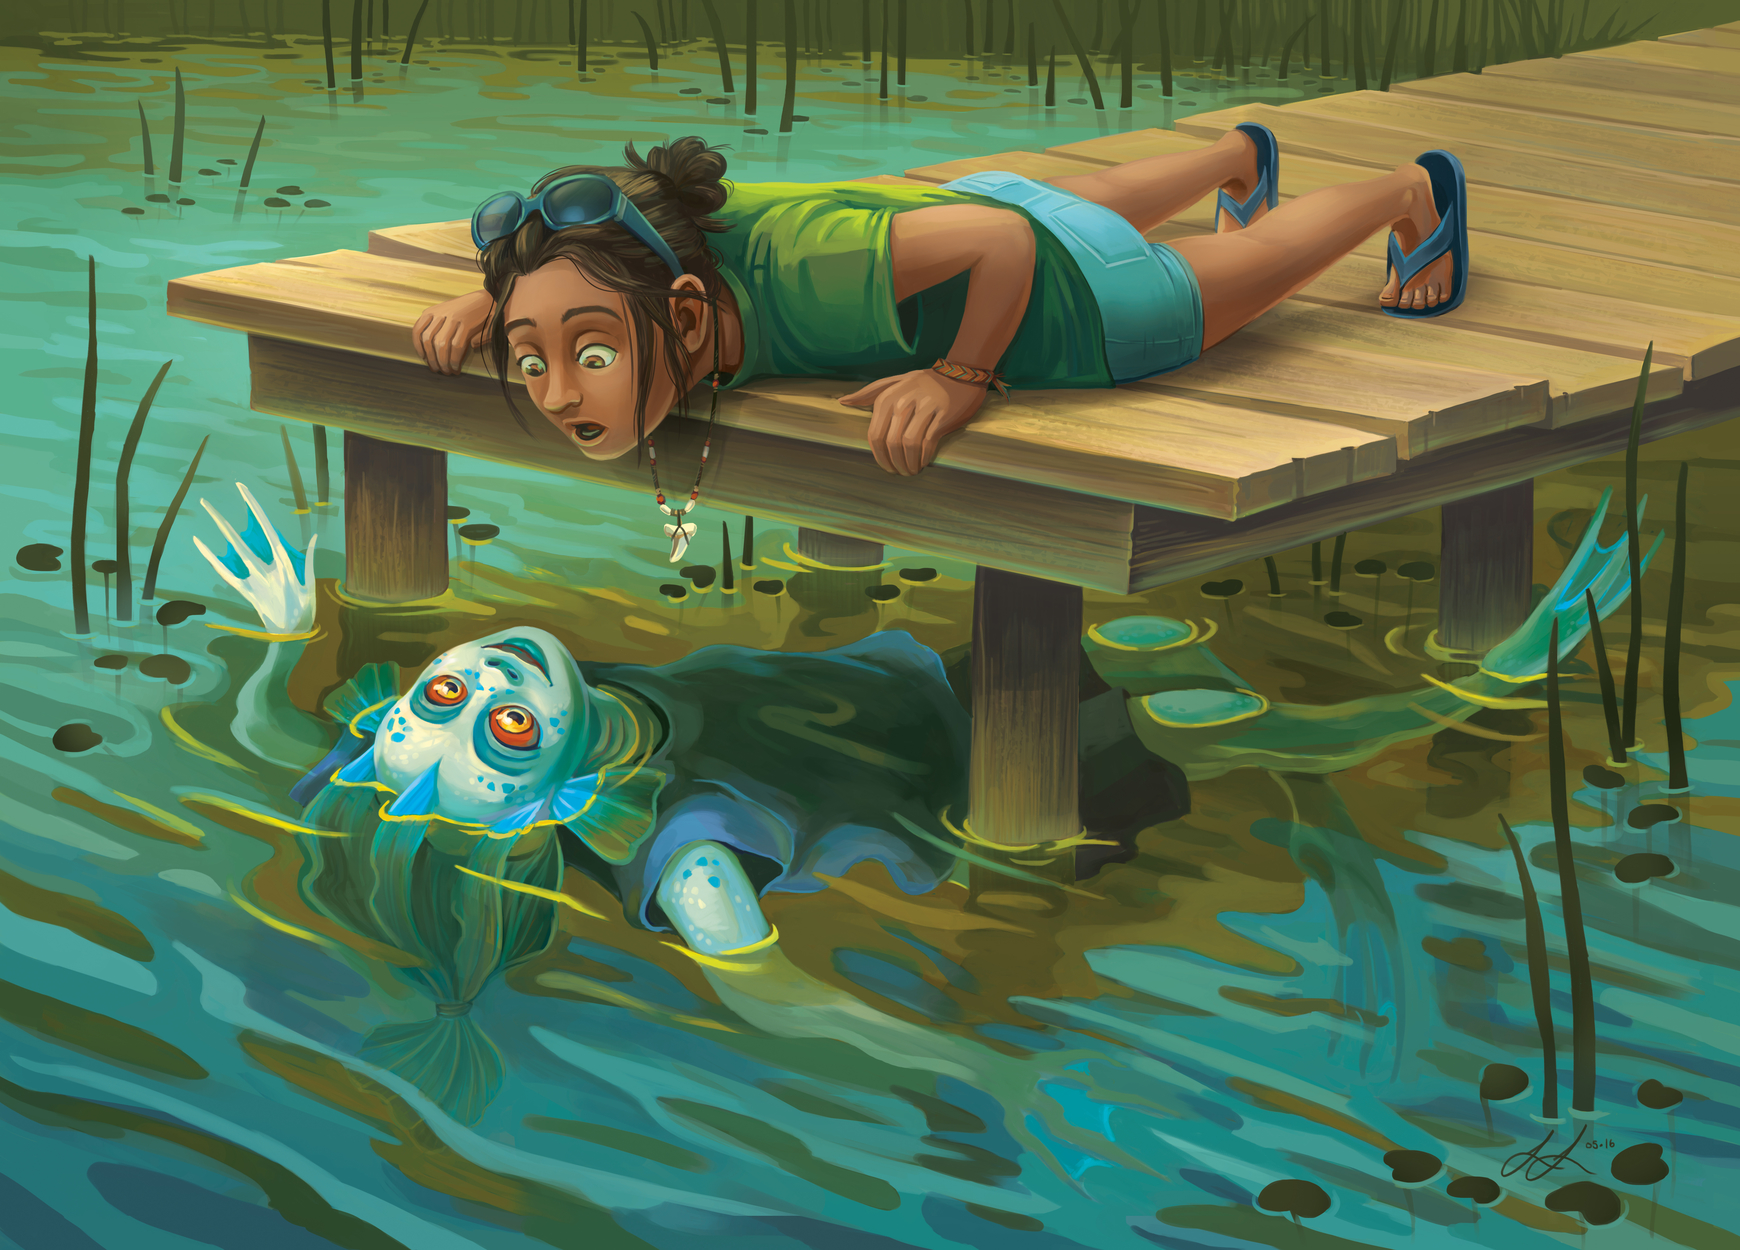 The Two Summer Camps Artwork by Lisa LaRose